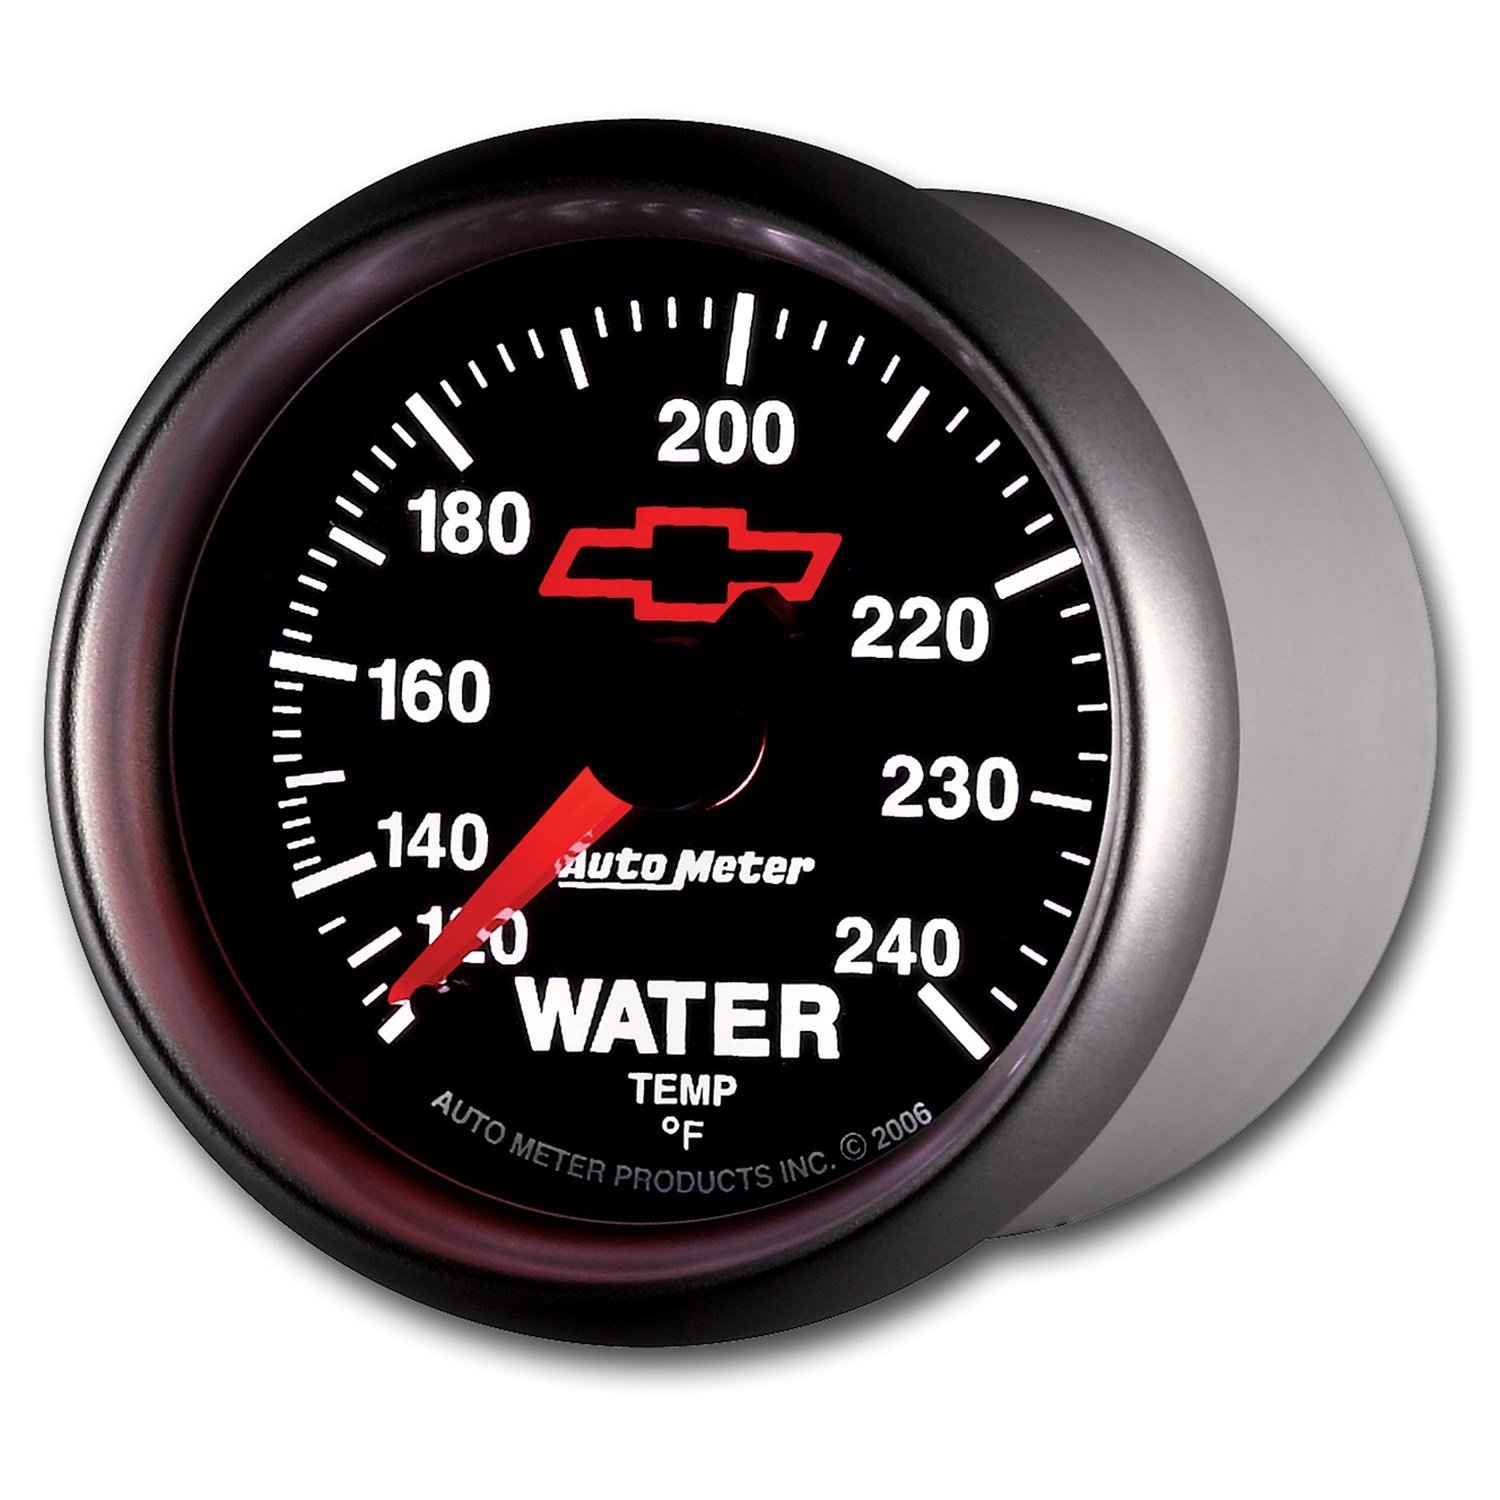 Auto Meter 3632-00406 GM Series Mechanical Water Temperature Gauge by Auto Meter (Image #7)